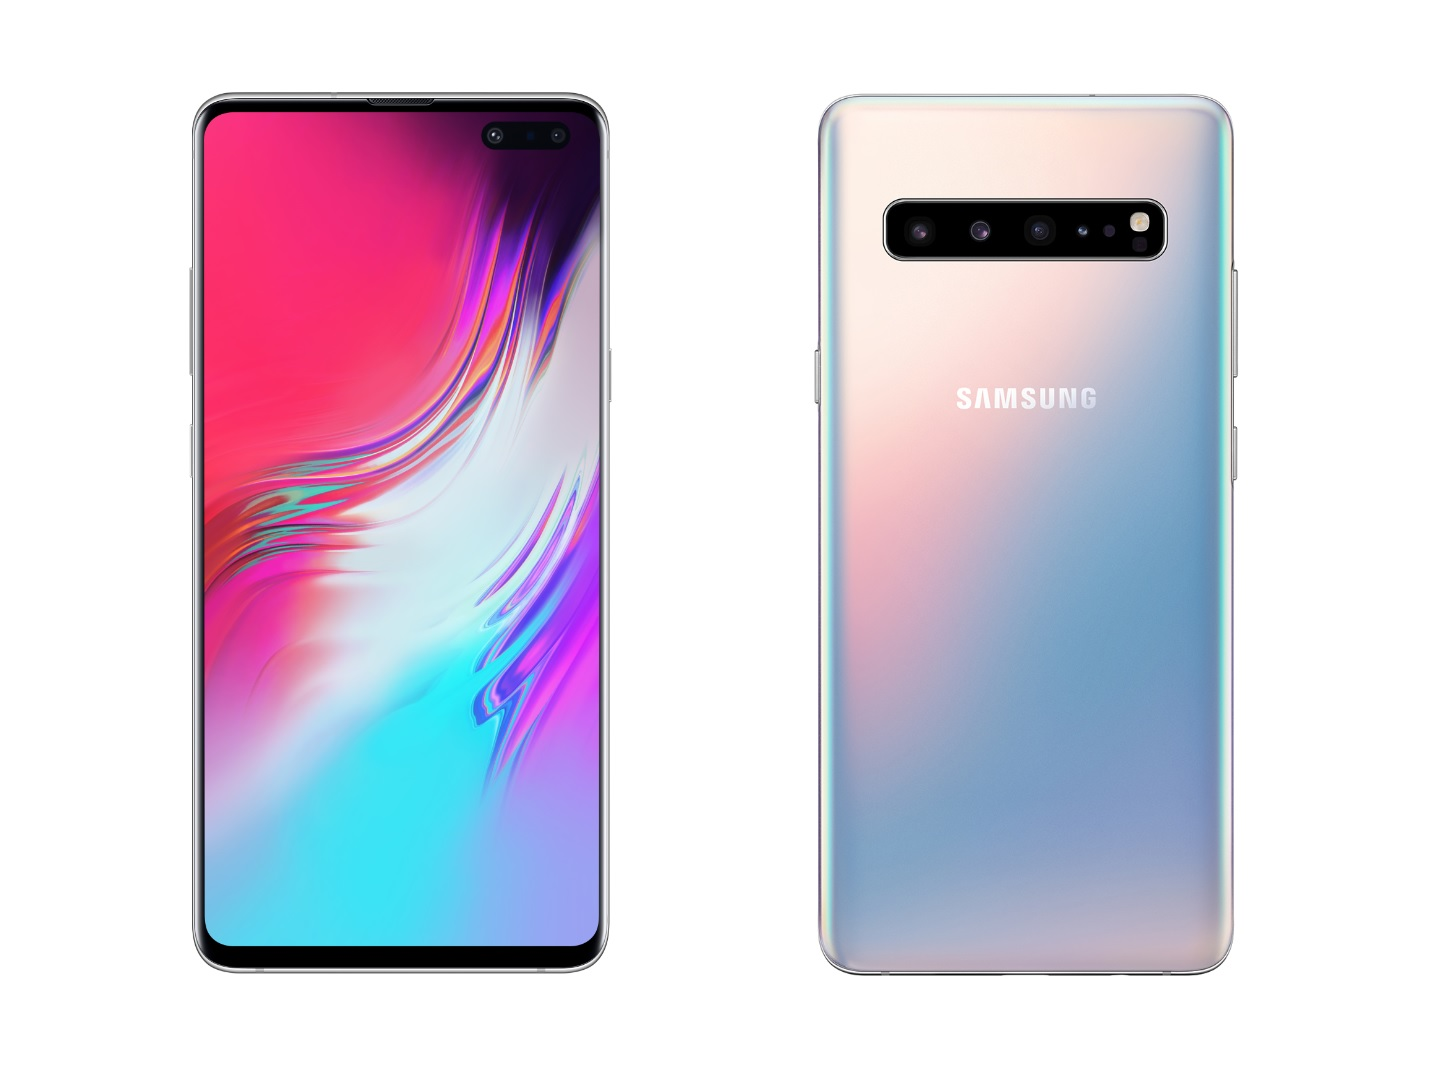 This is when Samsung's Galaxy S10 5G will come to Europe